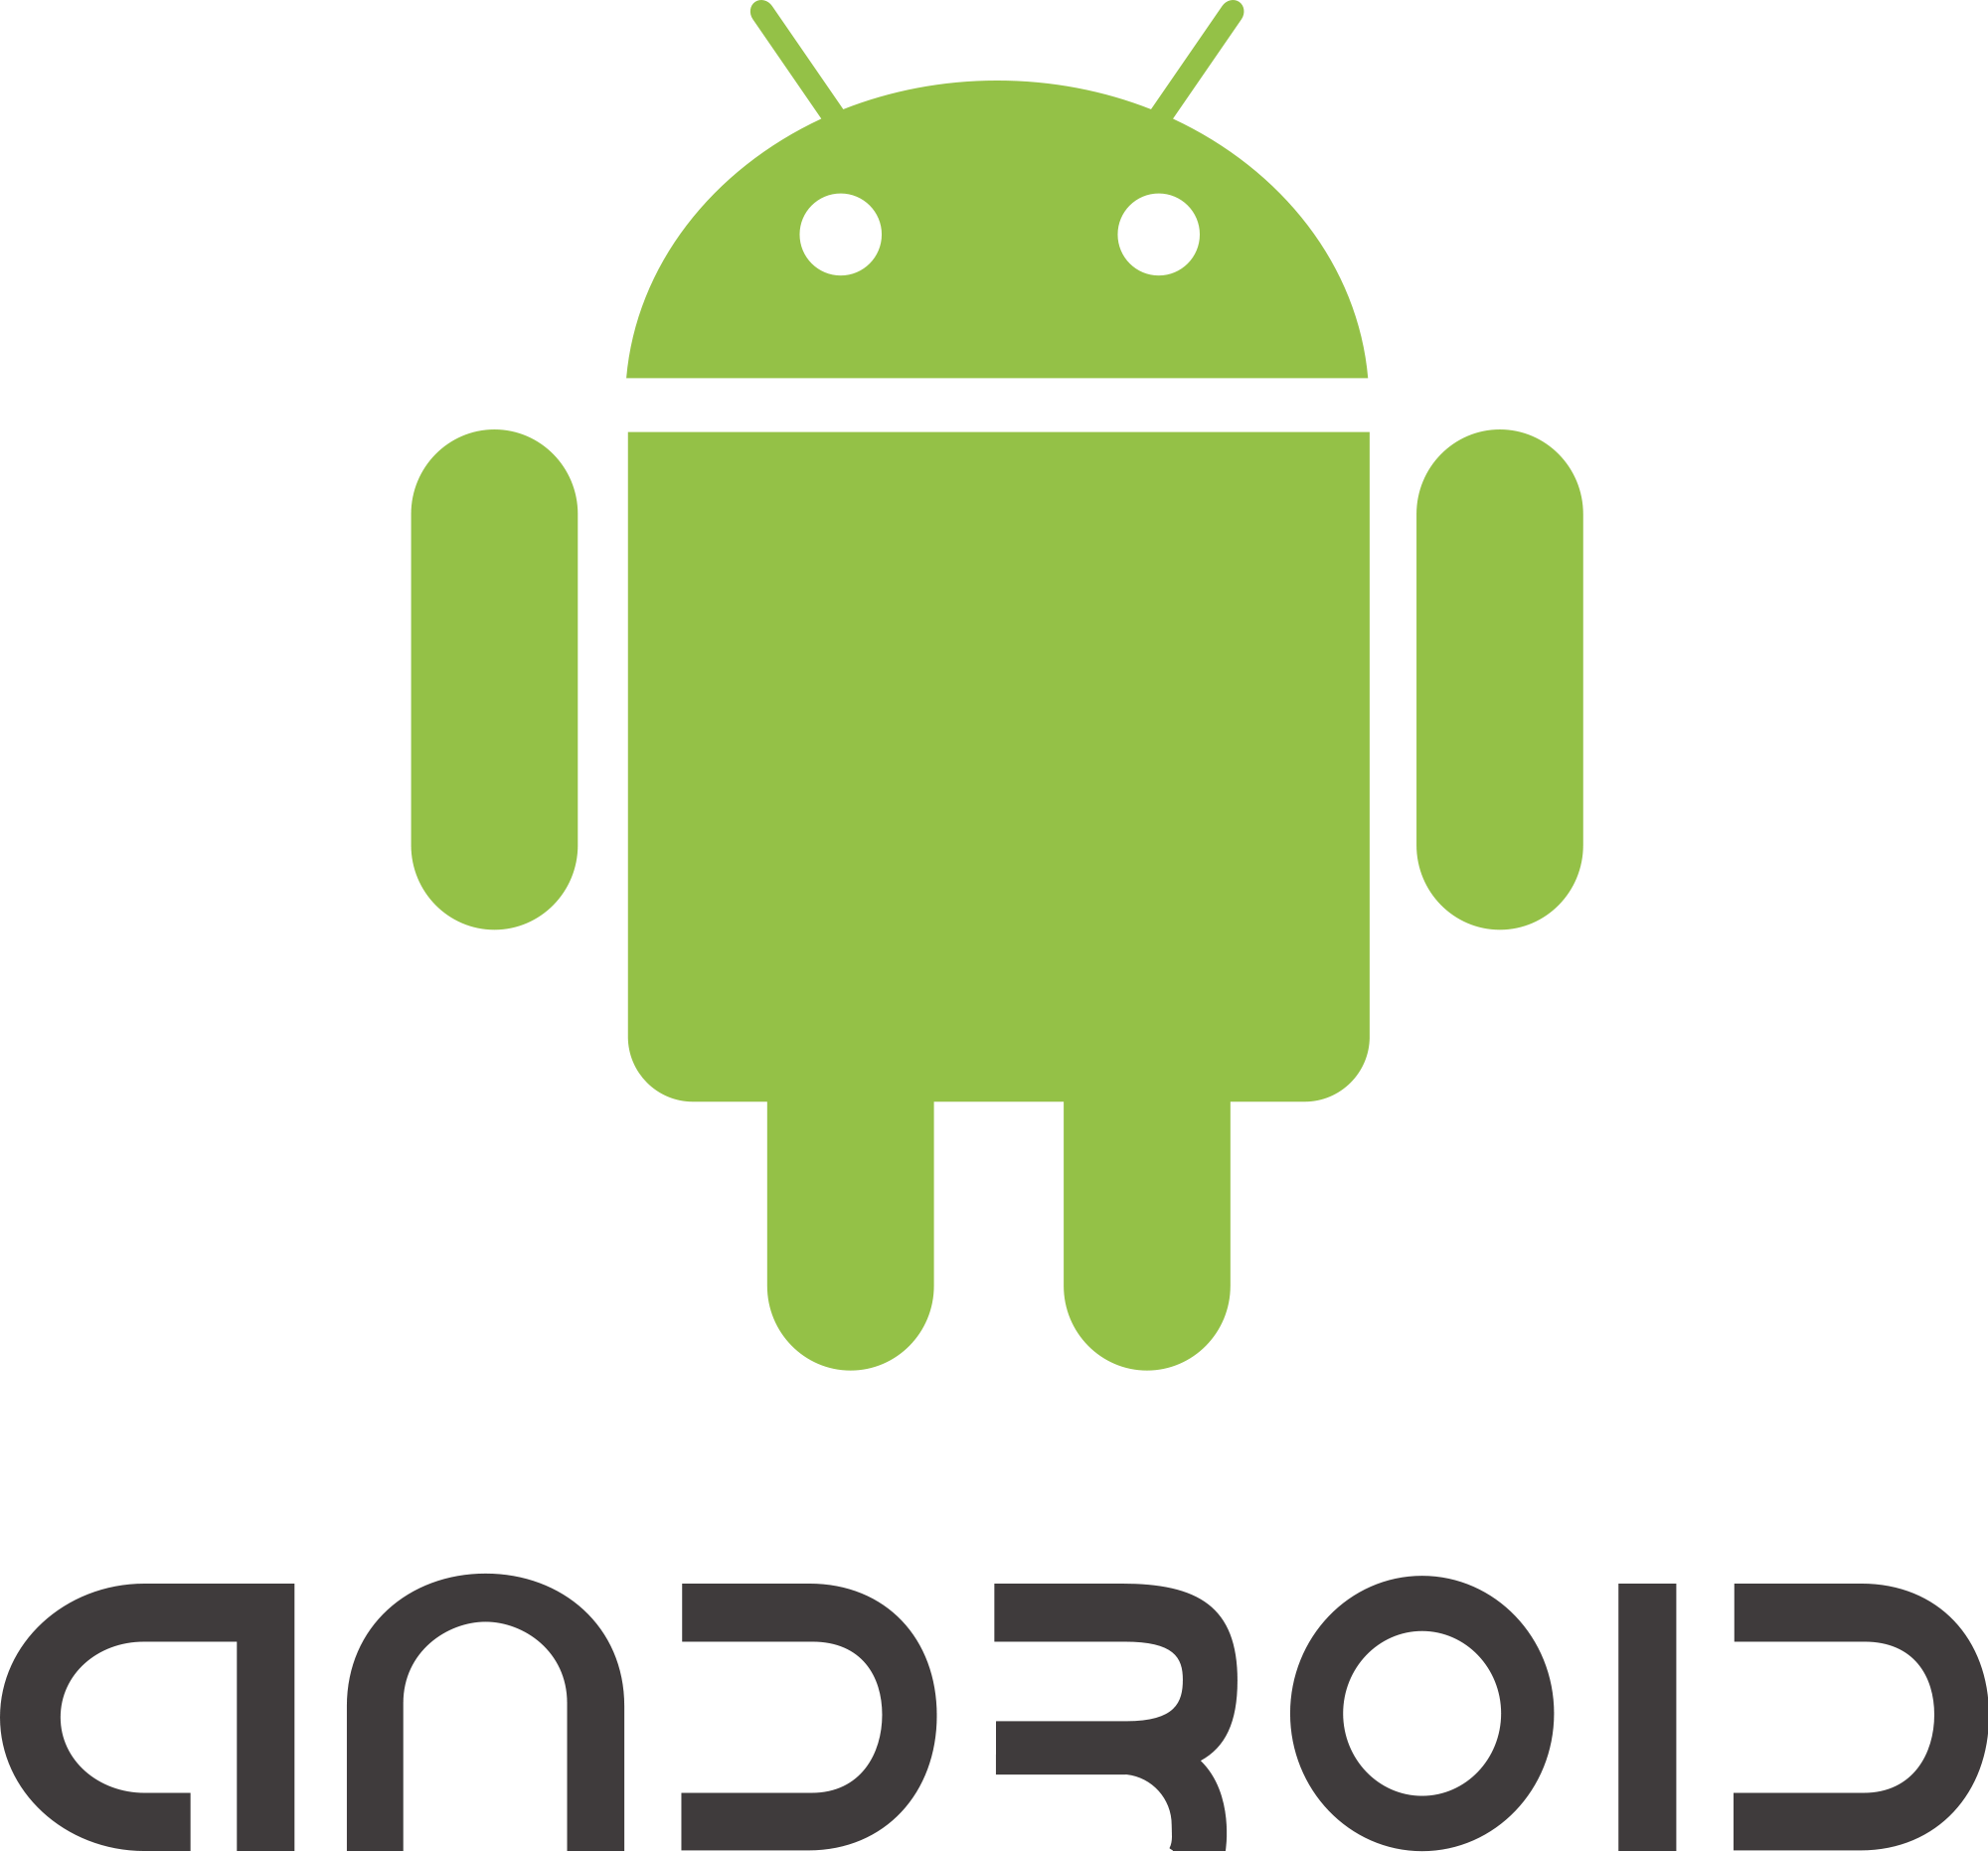 android name